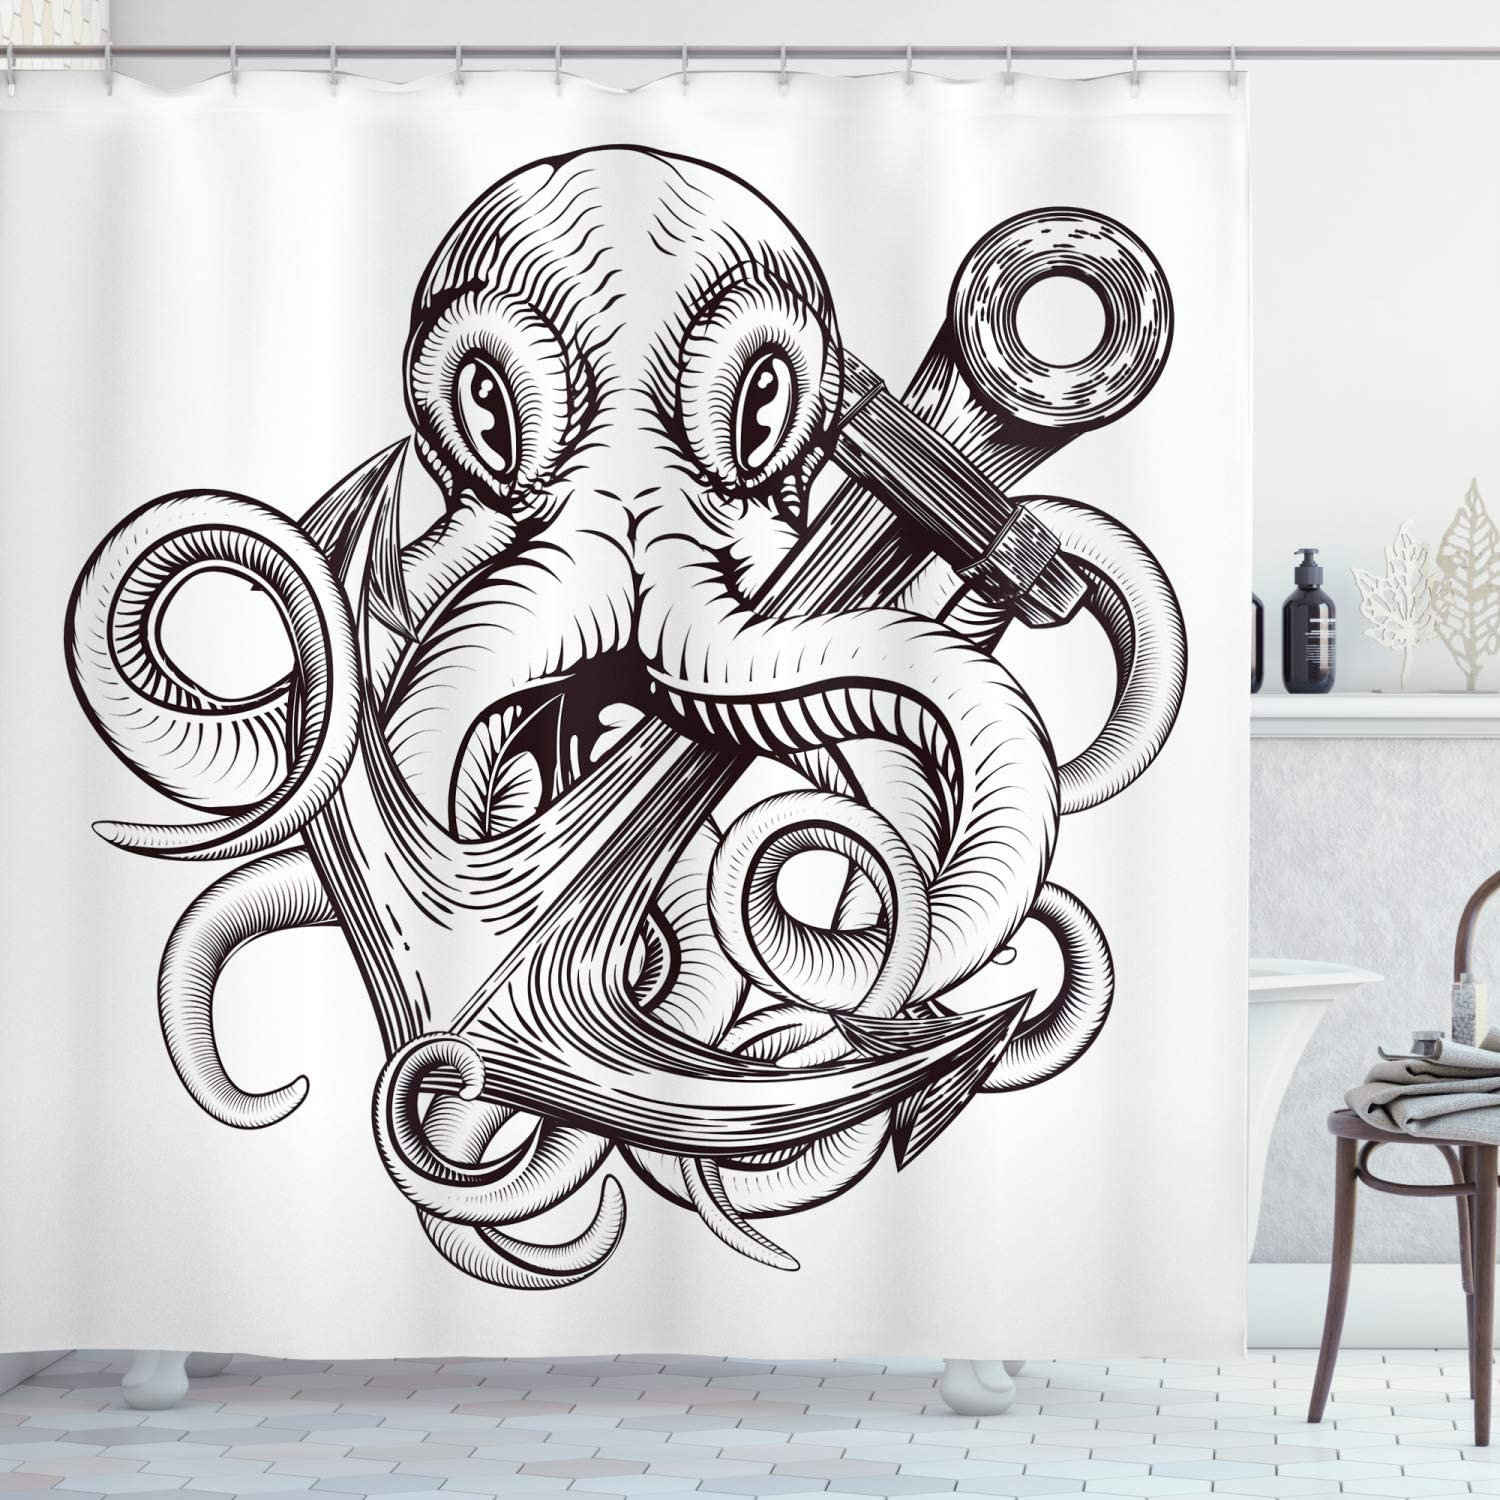 """Ambesonne Anchor Shower Curtain, Monochrome Octopus Tattoo Art Style Naval Sketch Mythical Kraken Beast Design, Cloth Fabric Bathroom Decor Set with Hooks, 70"""" Long, White Brown"""